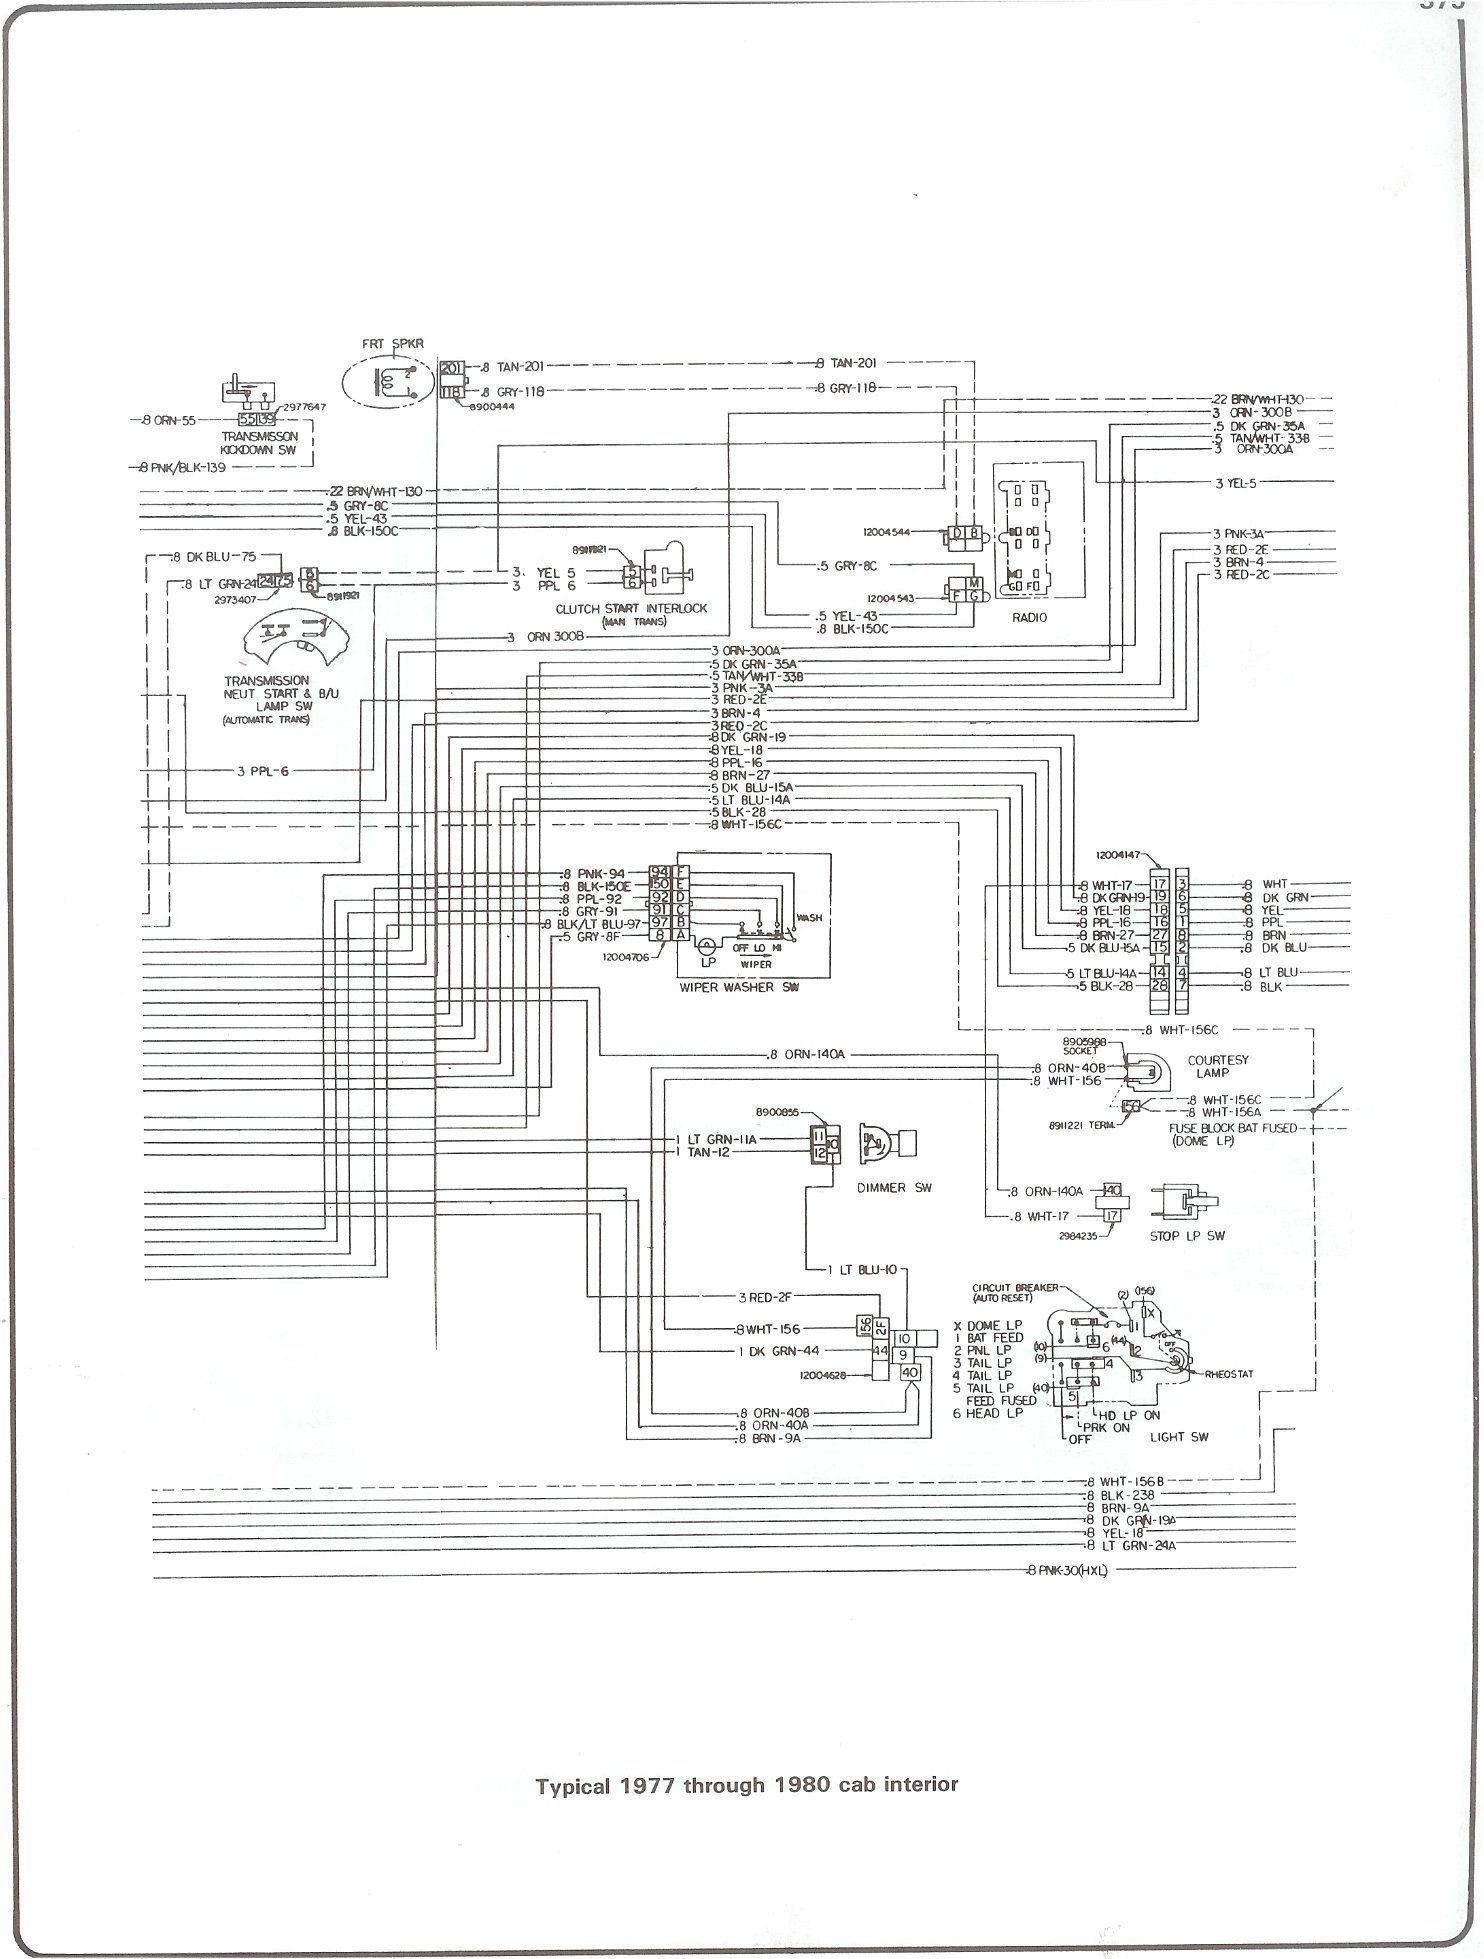 76 C10 Wiring Diagram Third Level 1977 Camaro Box 1962 Chevy